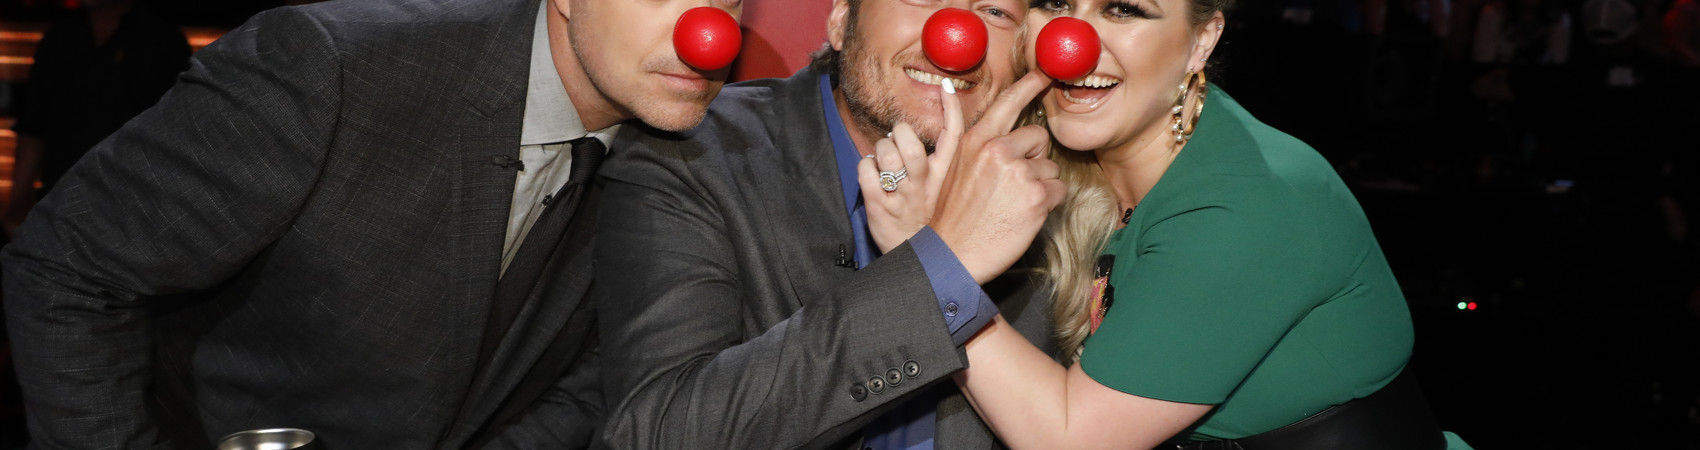 Celebrities were out in full force to support Red Nose Day and help end child poverty.